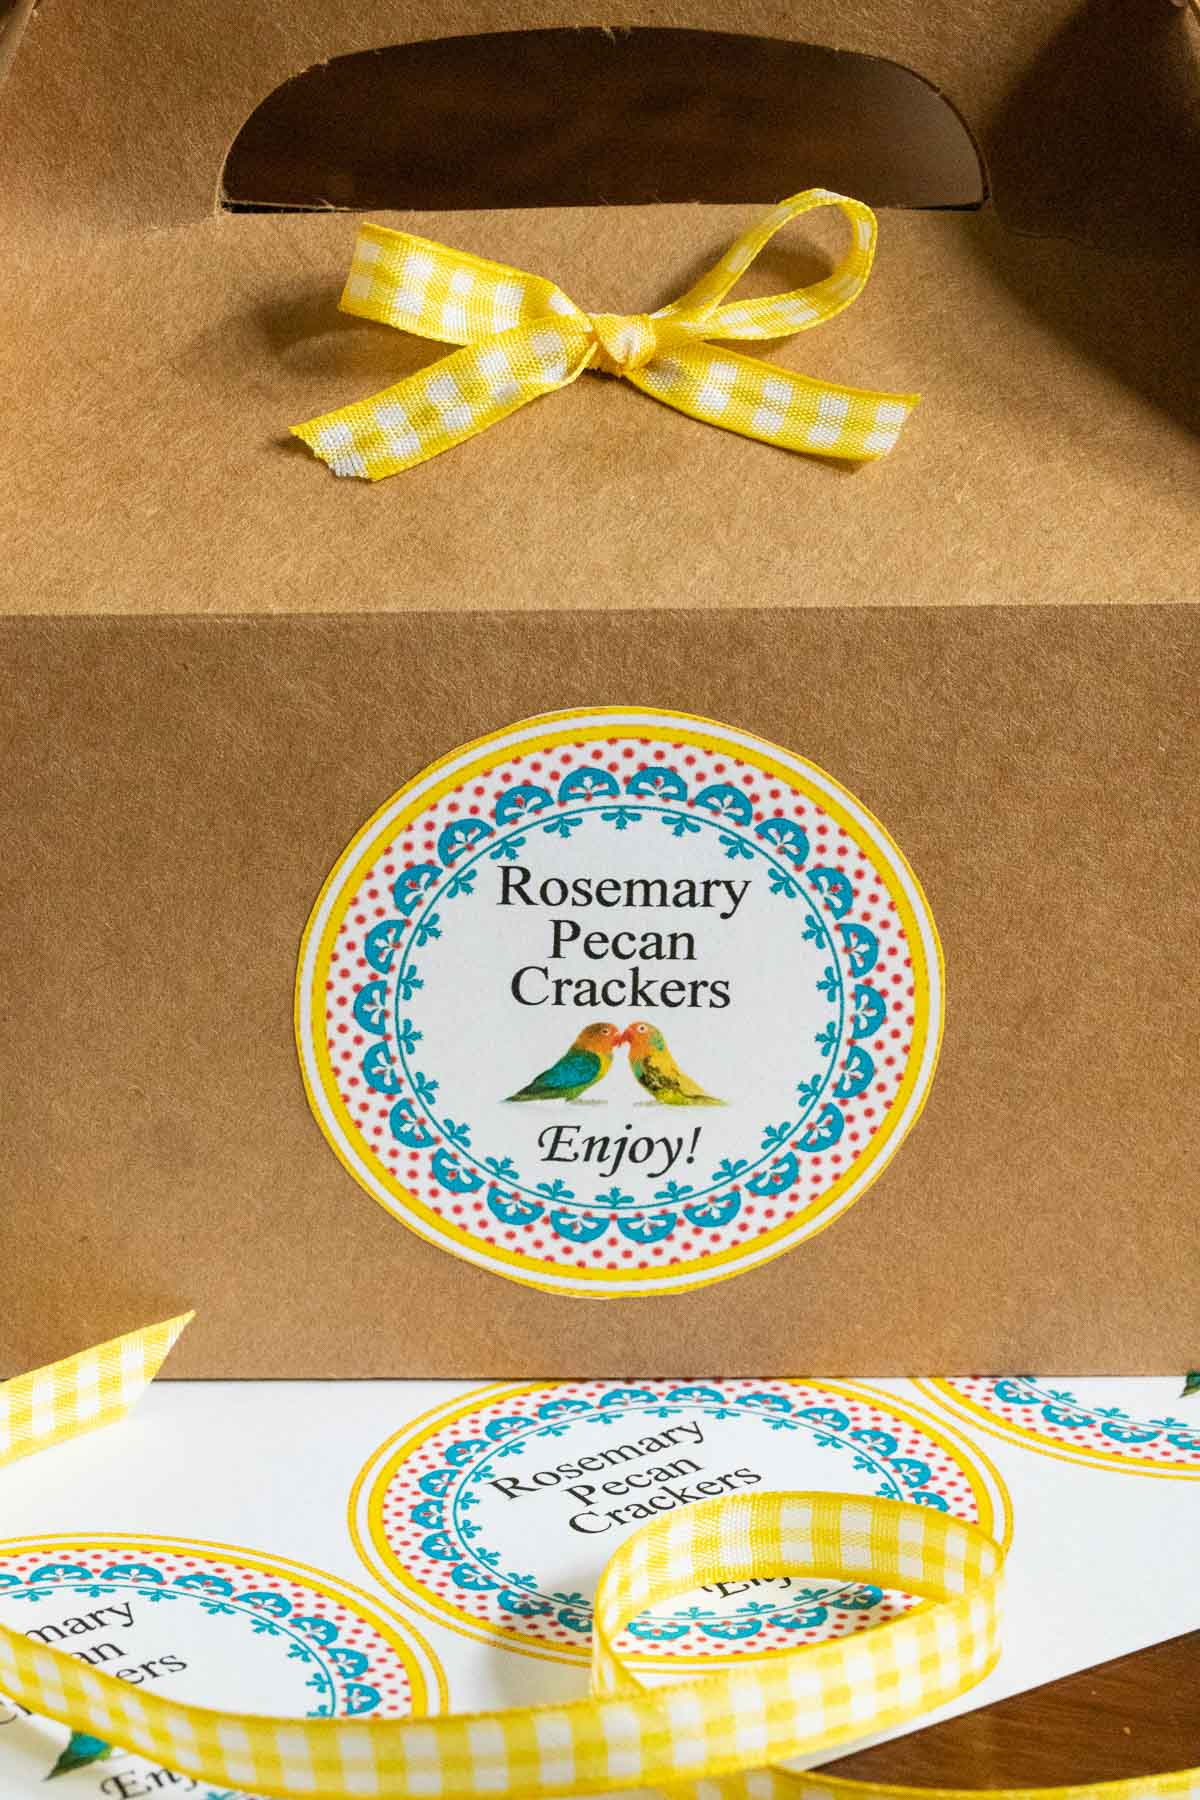 Closeup vertical photo of the Rosemary Pecan Crackers custom label on a brown gift box.